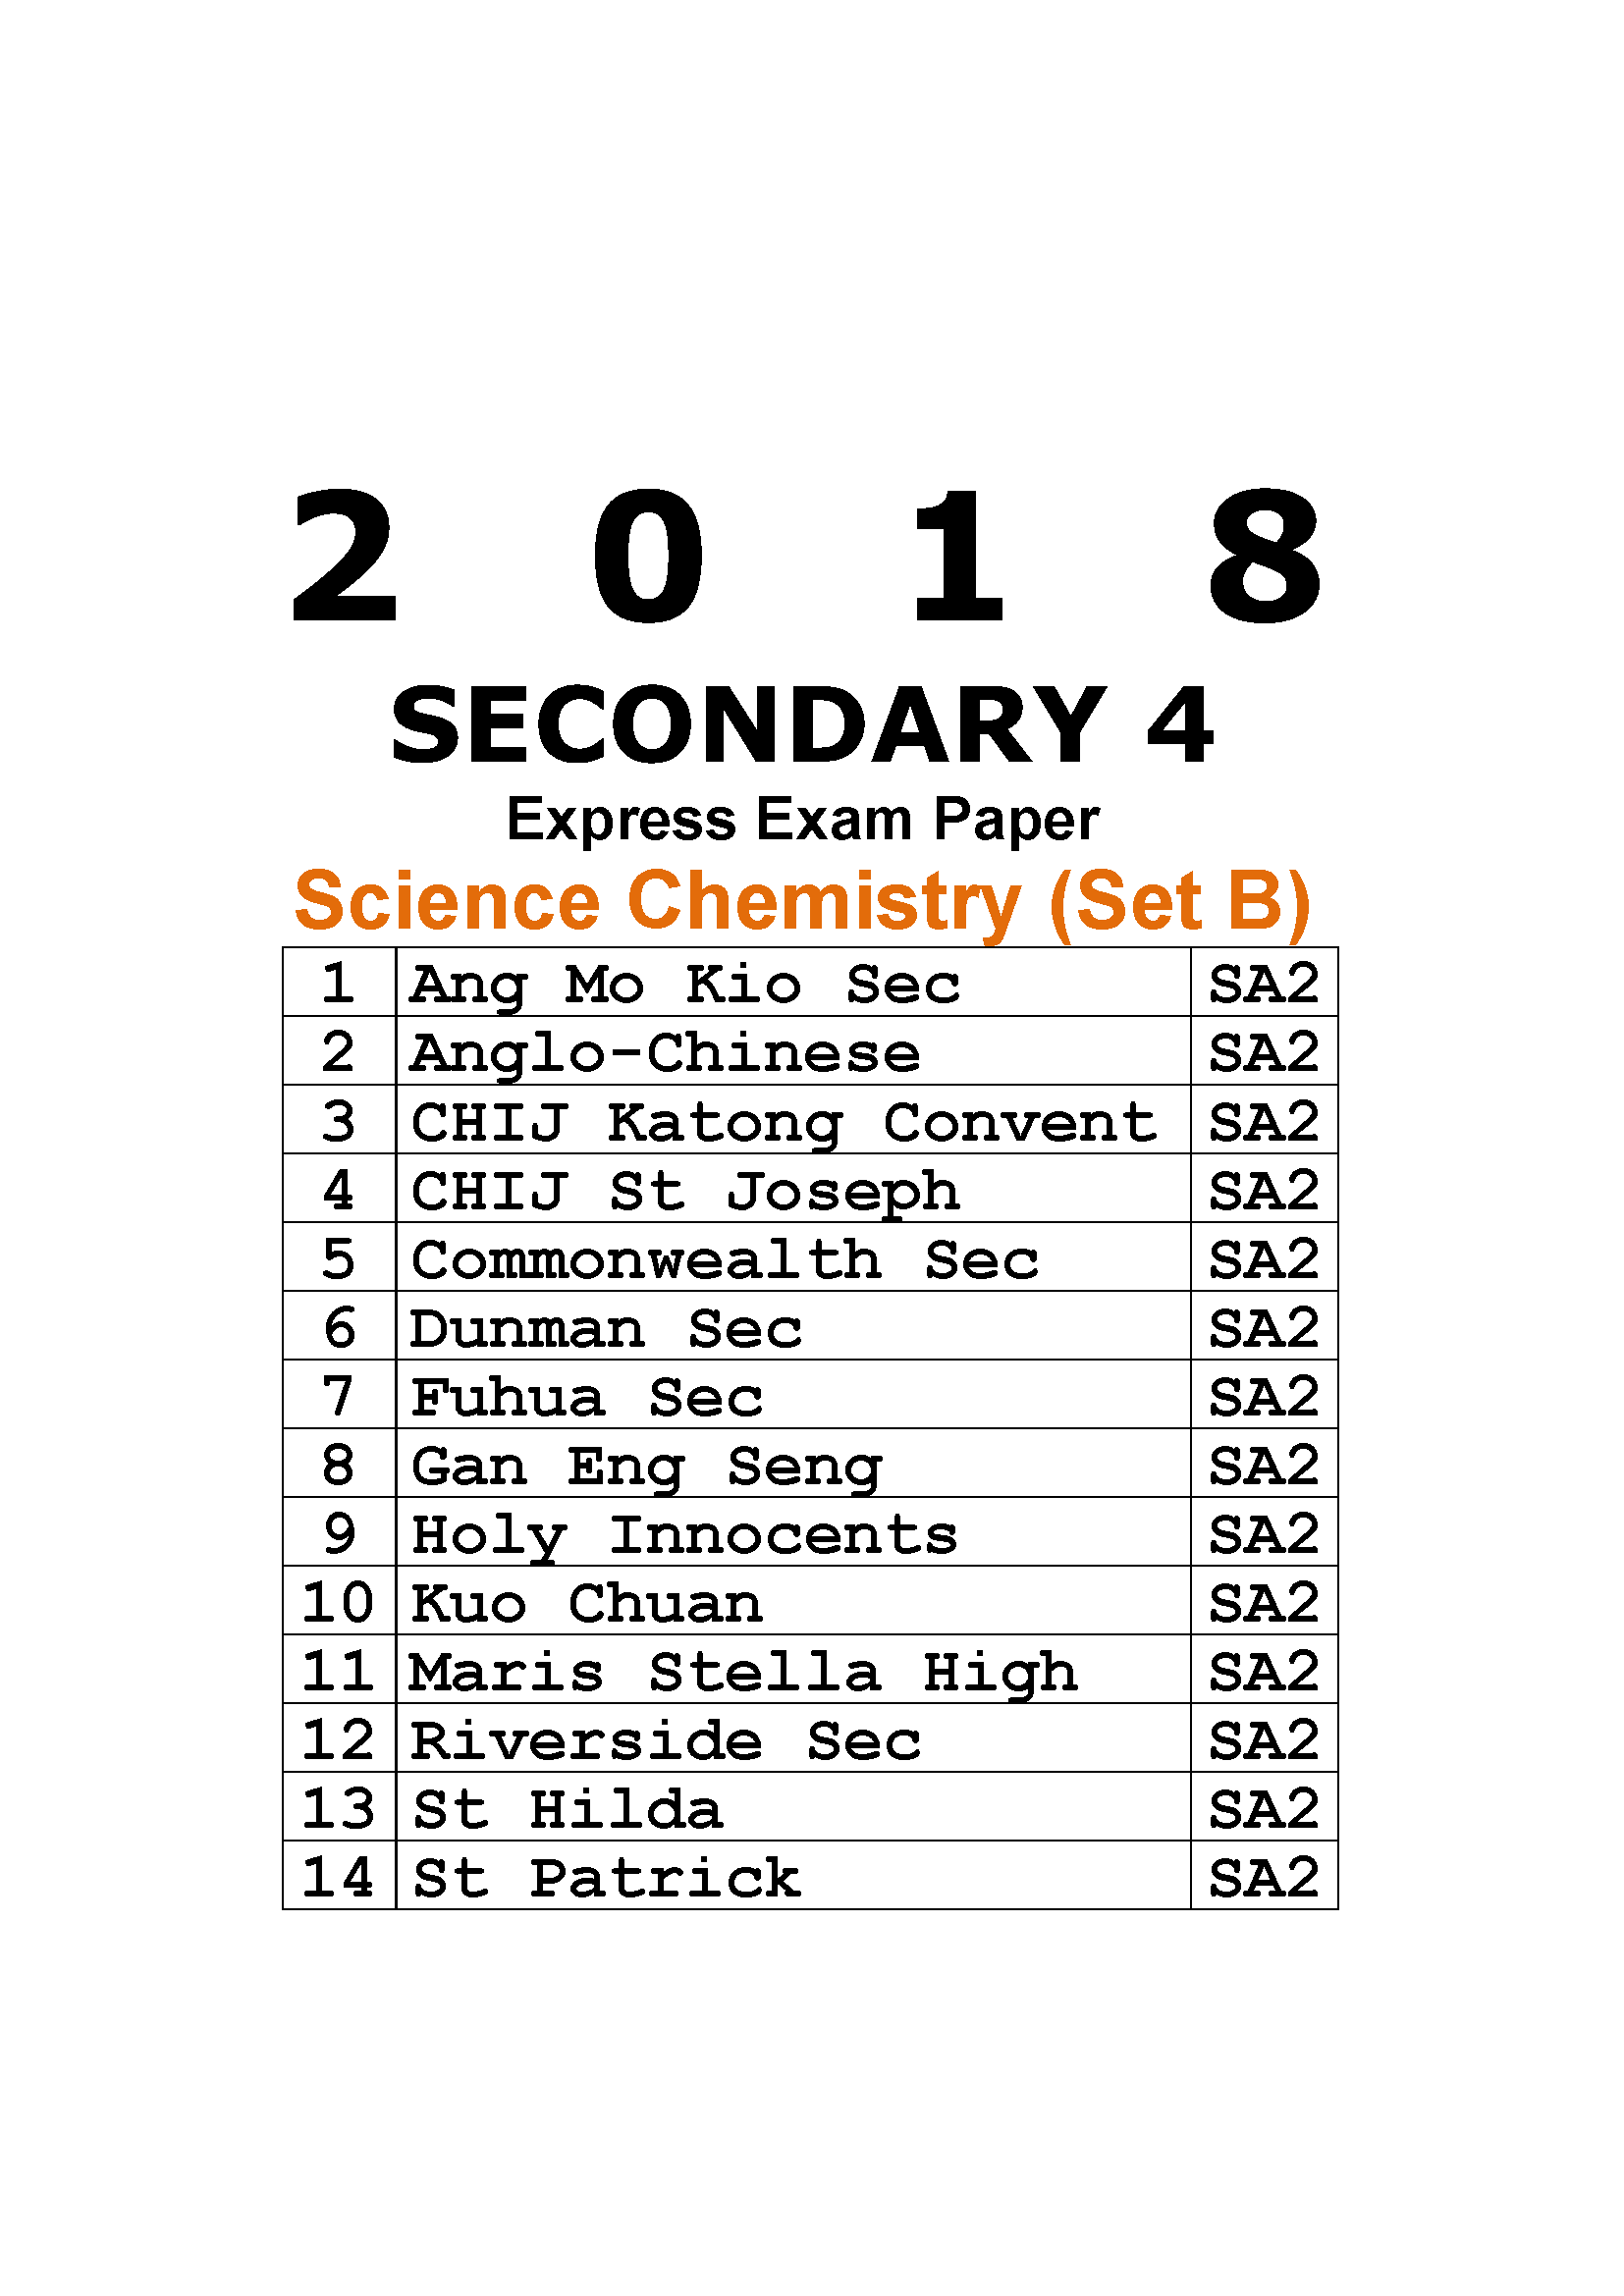 2018 Secondary 4 Express Science Chemistry Exam Paper (Set